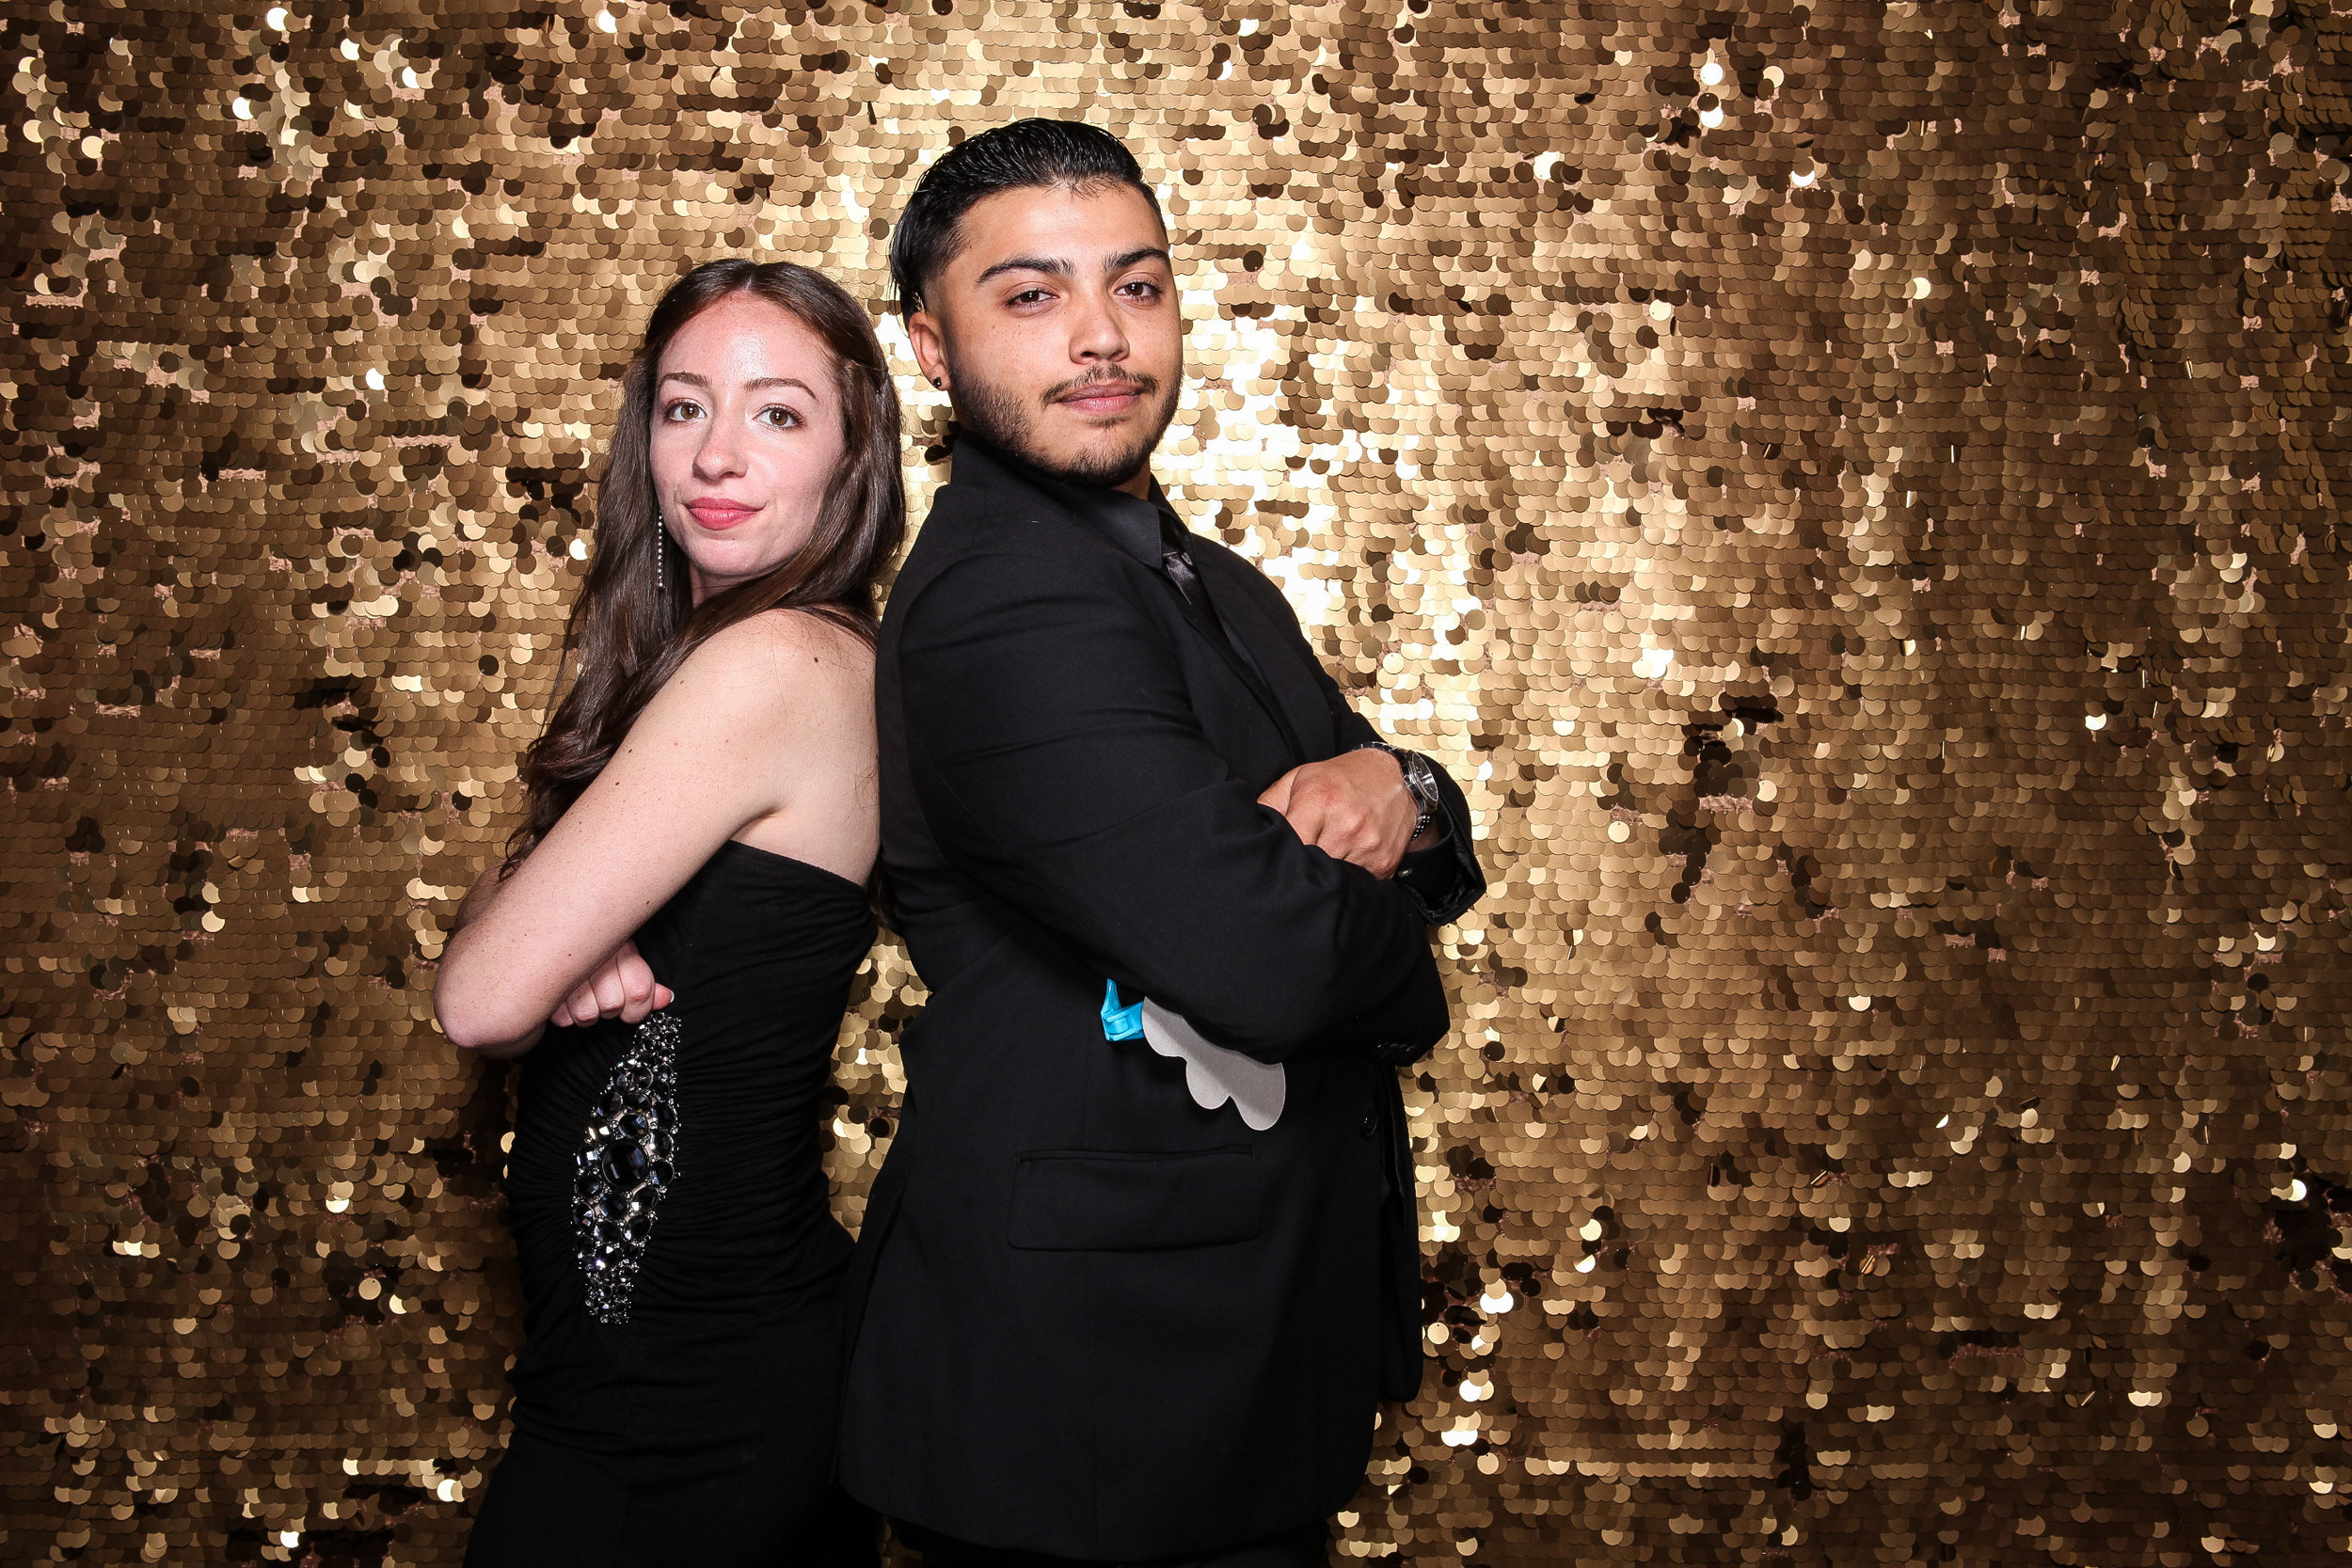 20190503_Adelphi_Senior_Formal-250.jpg